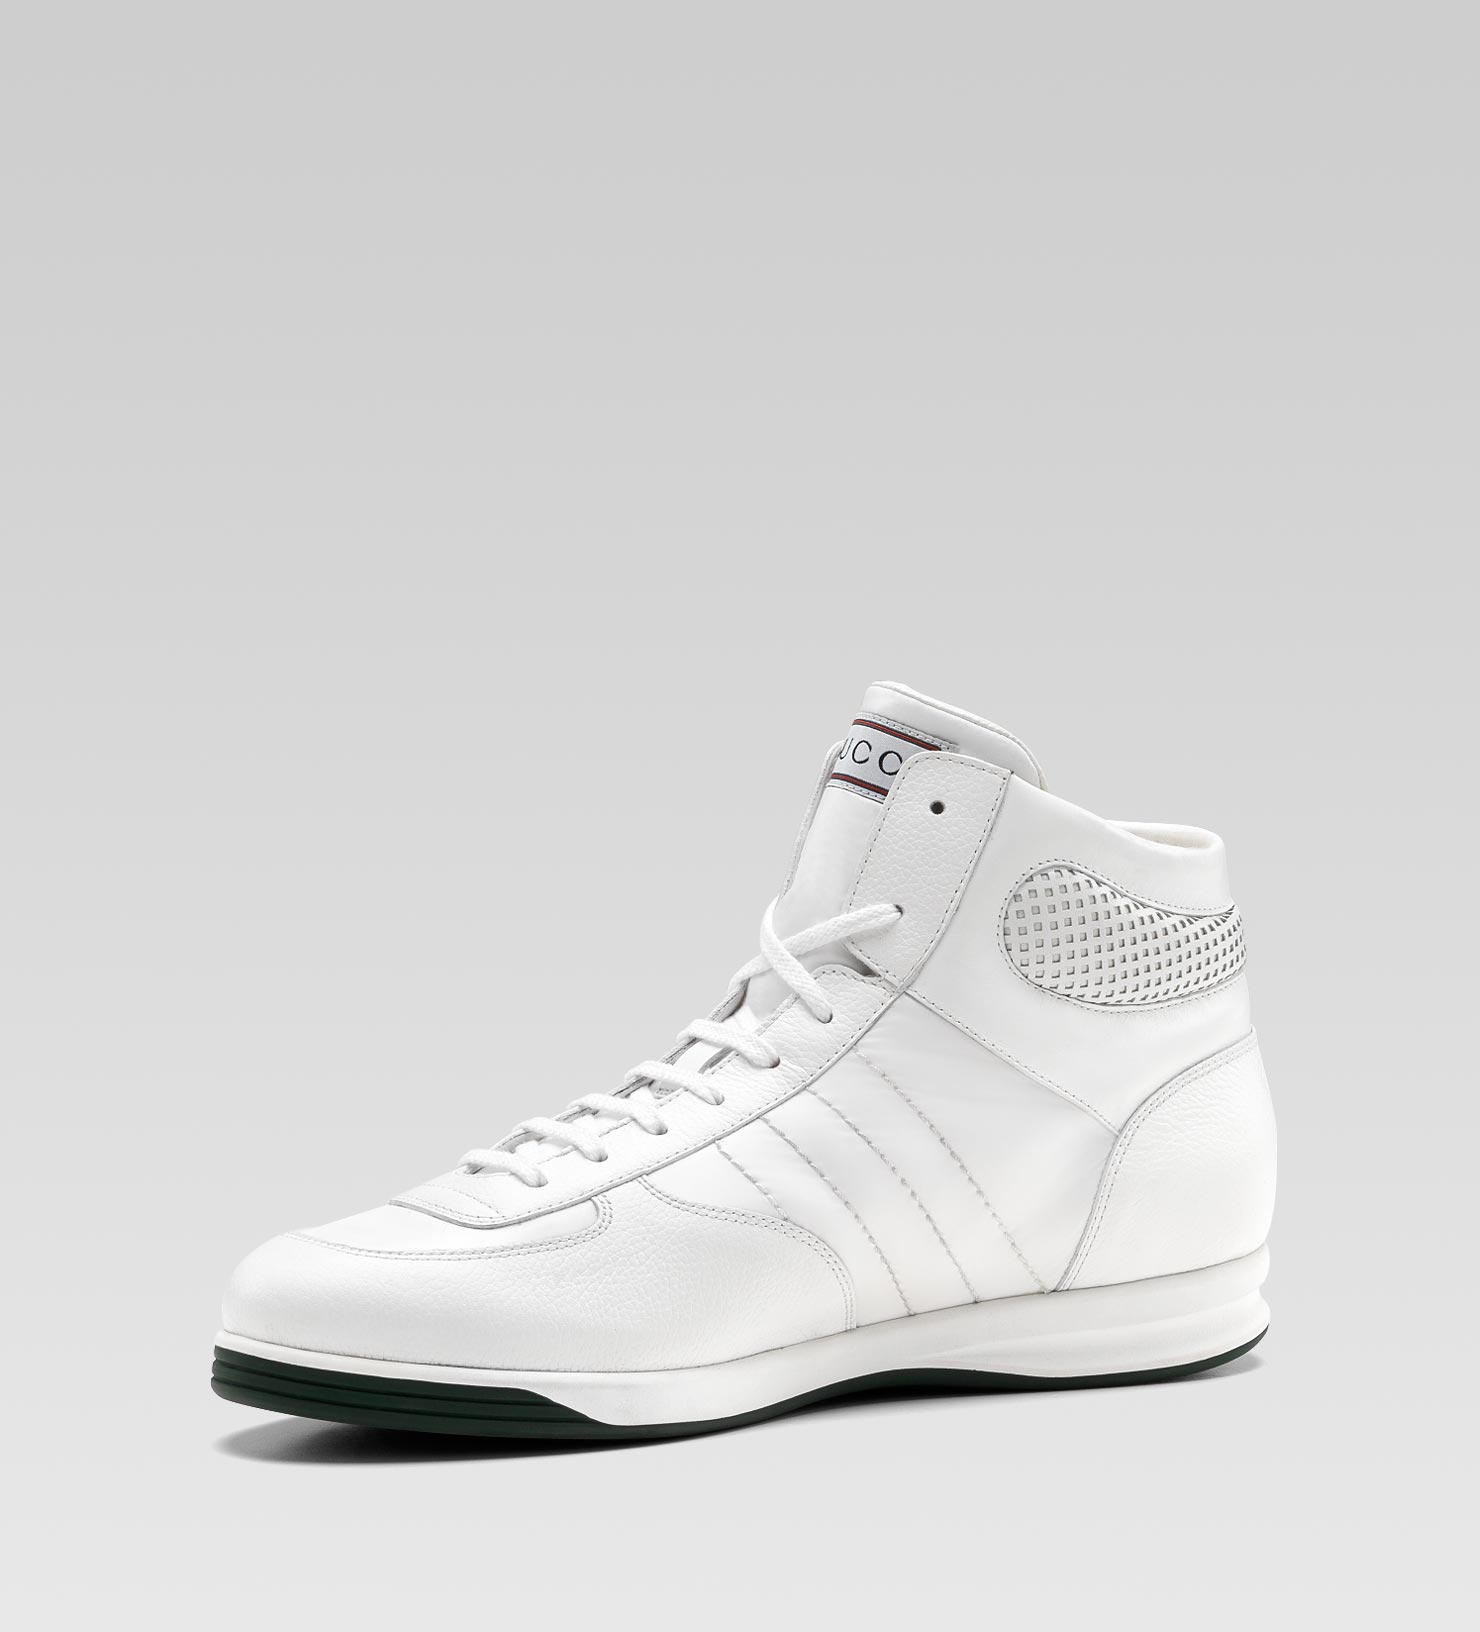 gucci 1984 sneakers. gallery gucci 1984 sneakers h